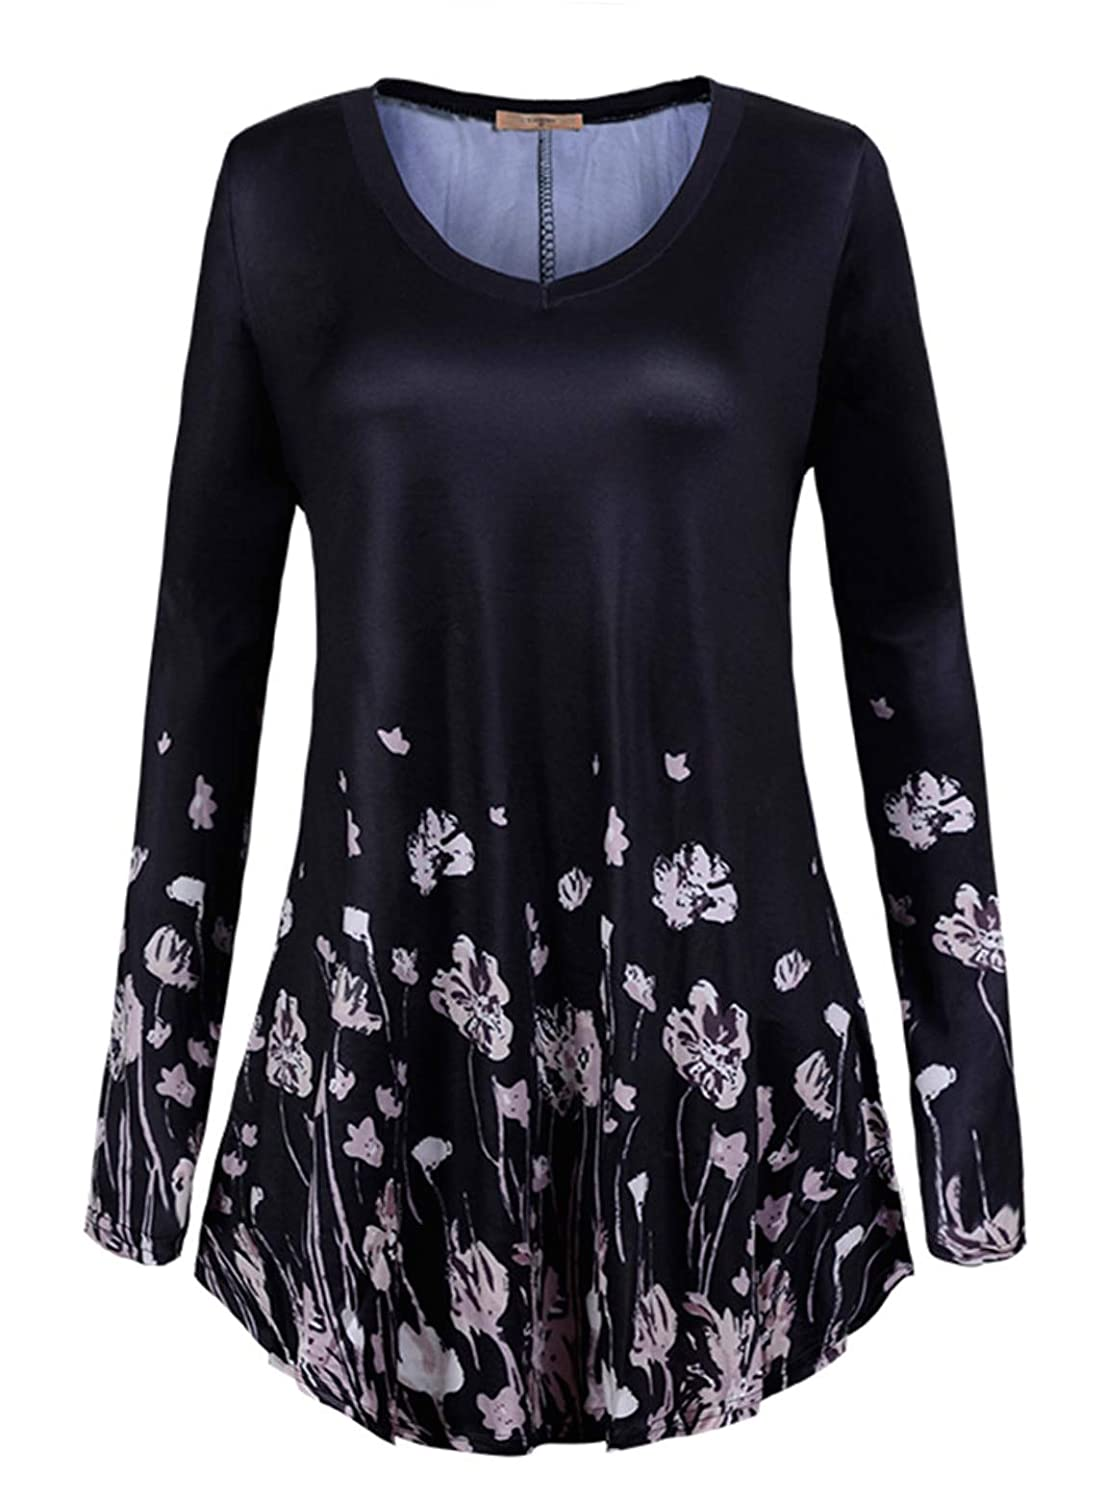 a1158fb3ad163 Top4: Luranee Womens Long Sleeve Tunic Tops V Neck Flowy Pleated Blouses  (FBA Only)